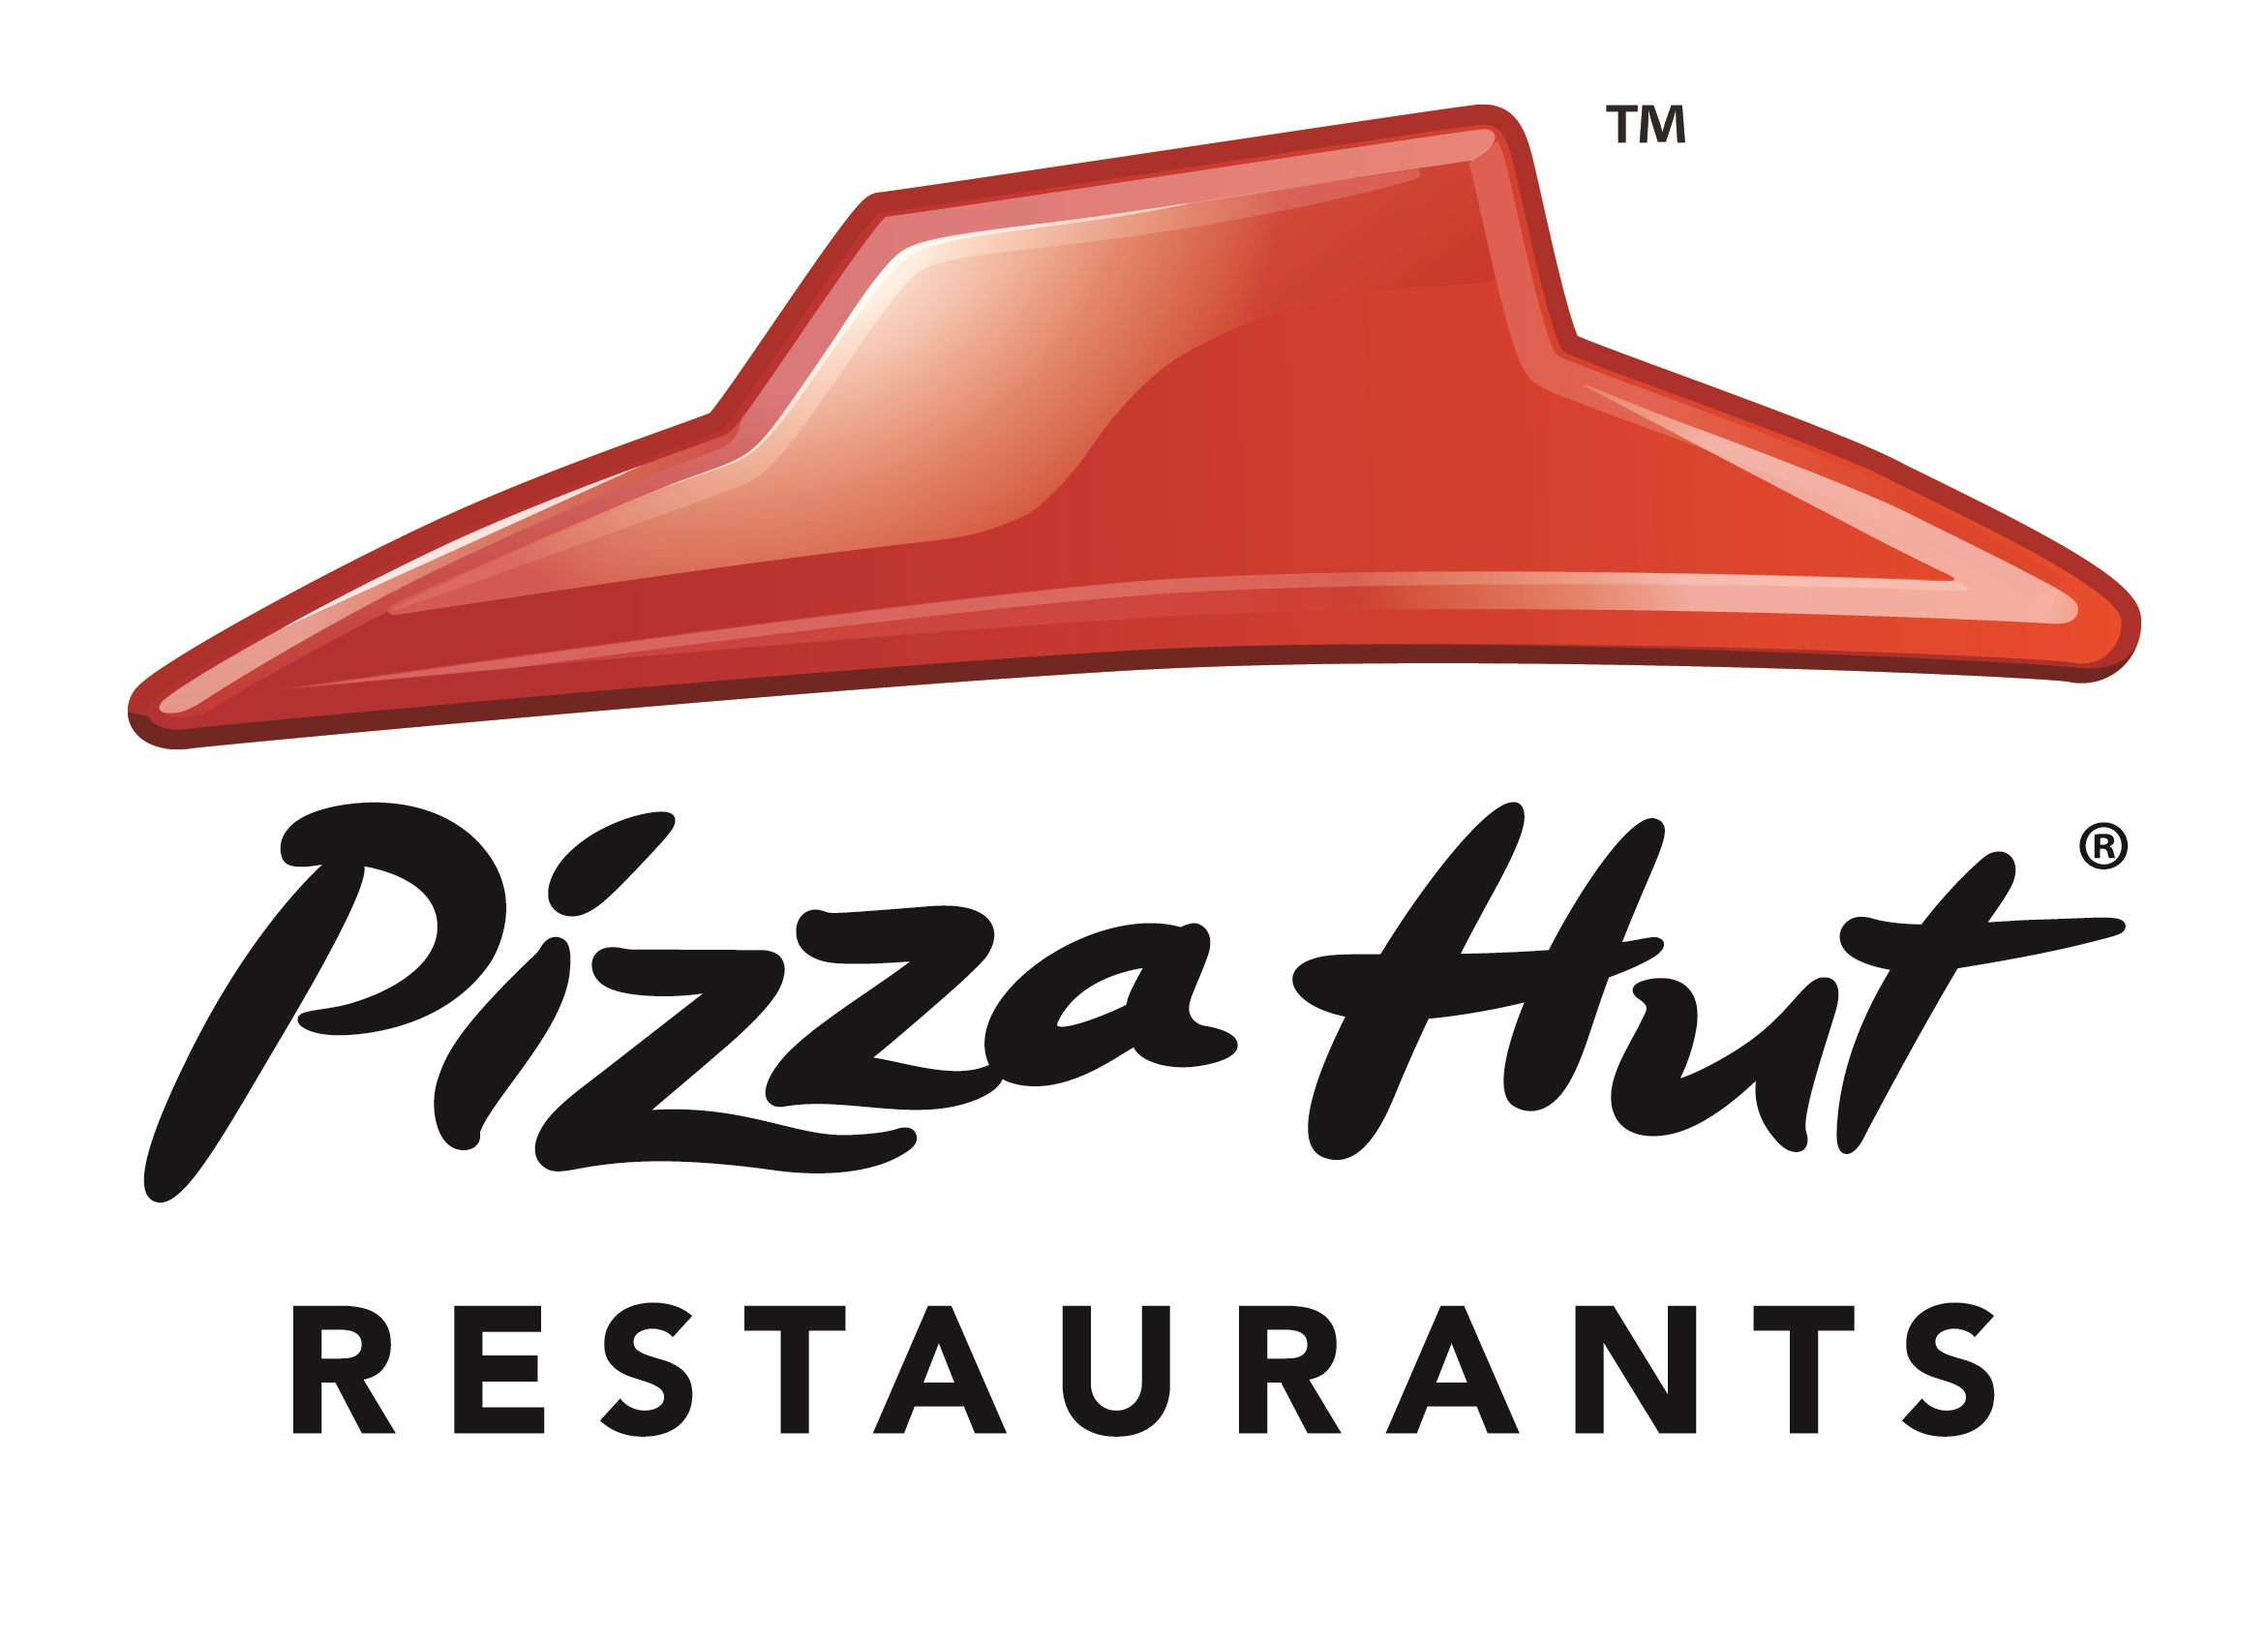 Image of Pizza Hut Restaurants logo